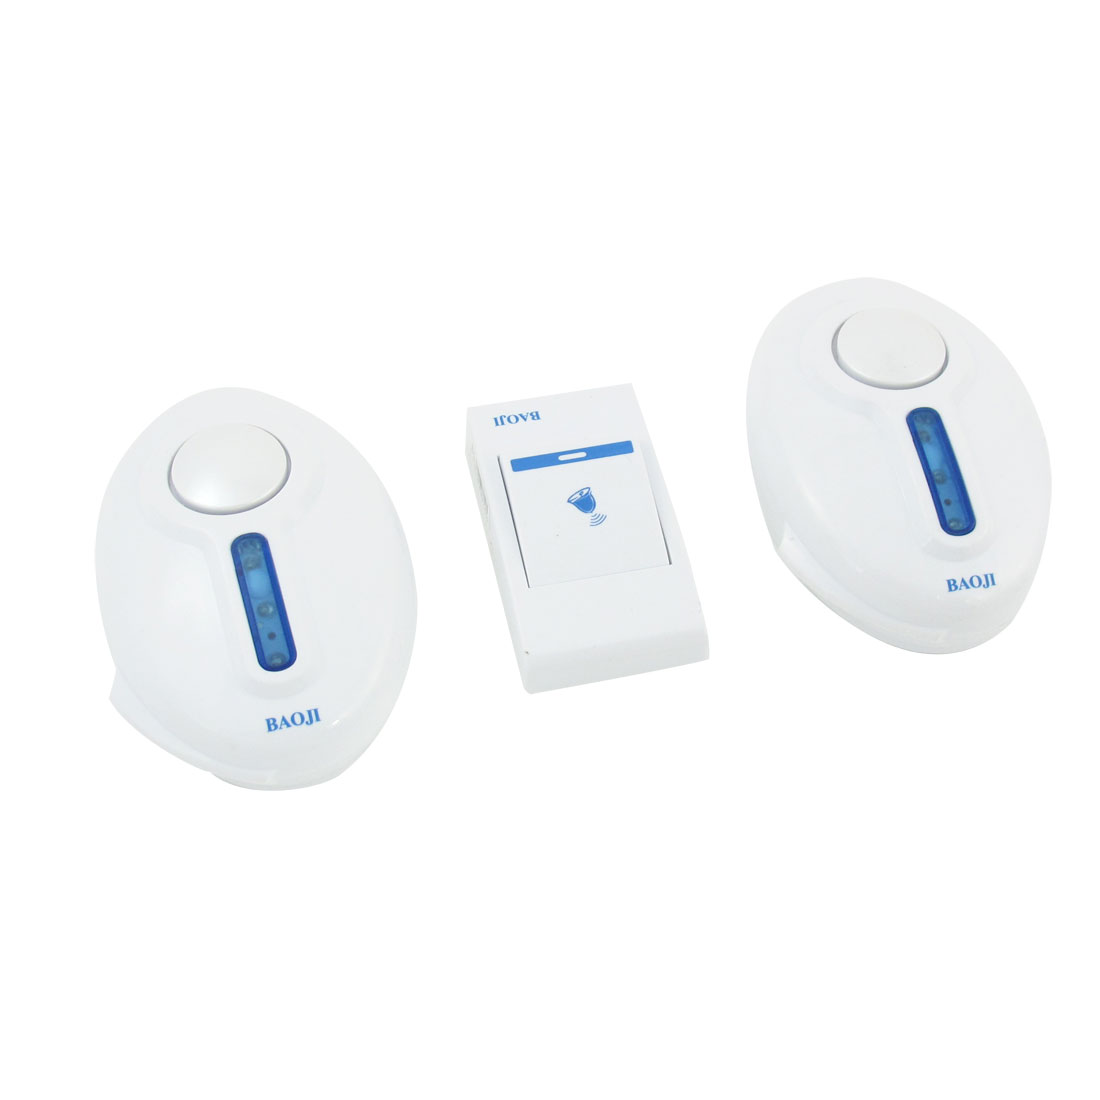 Voltage AC 100/110V Wireless Remote Control Doorbell Switch Set